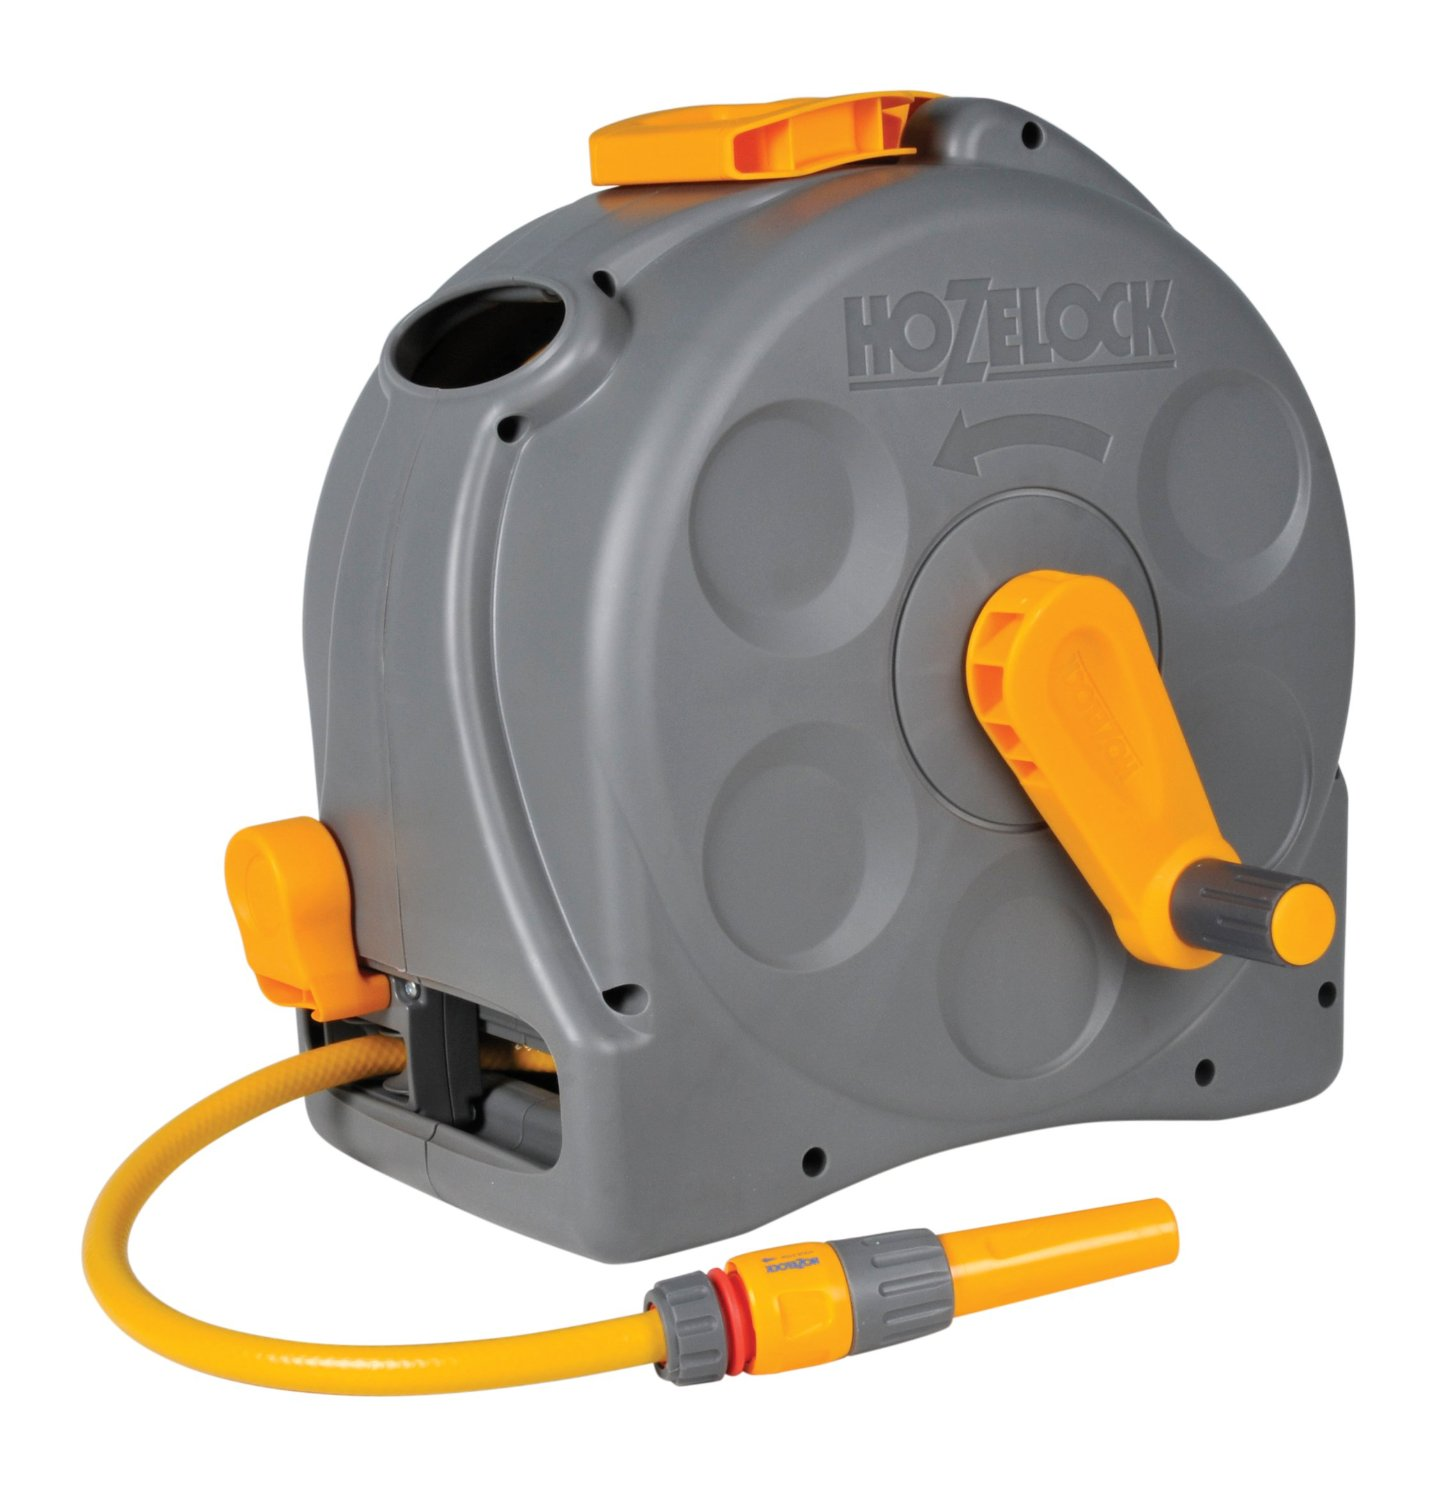 Hozelock Compact Reel 2 in 1 + 25 m slang